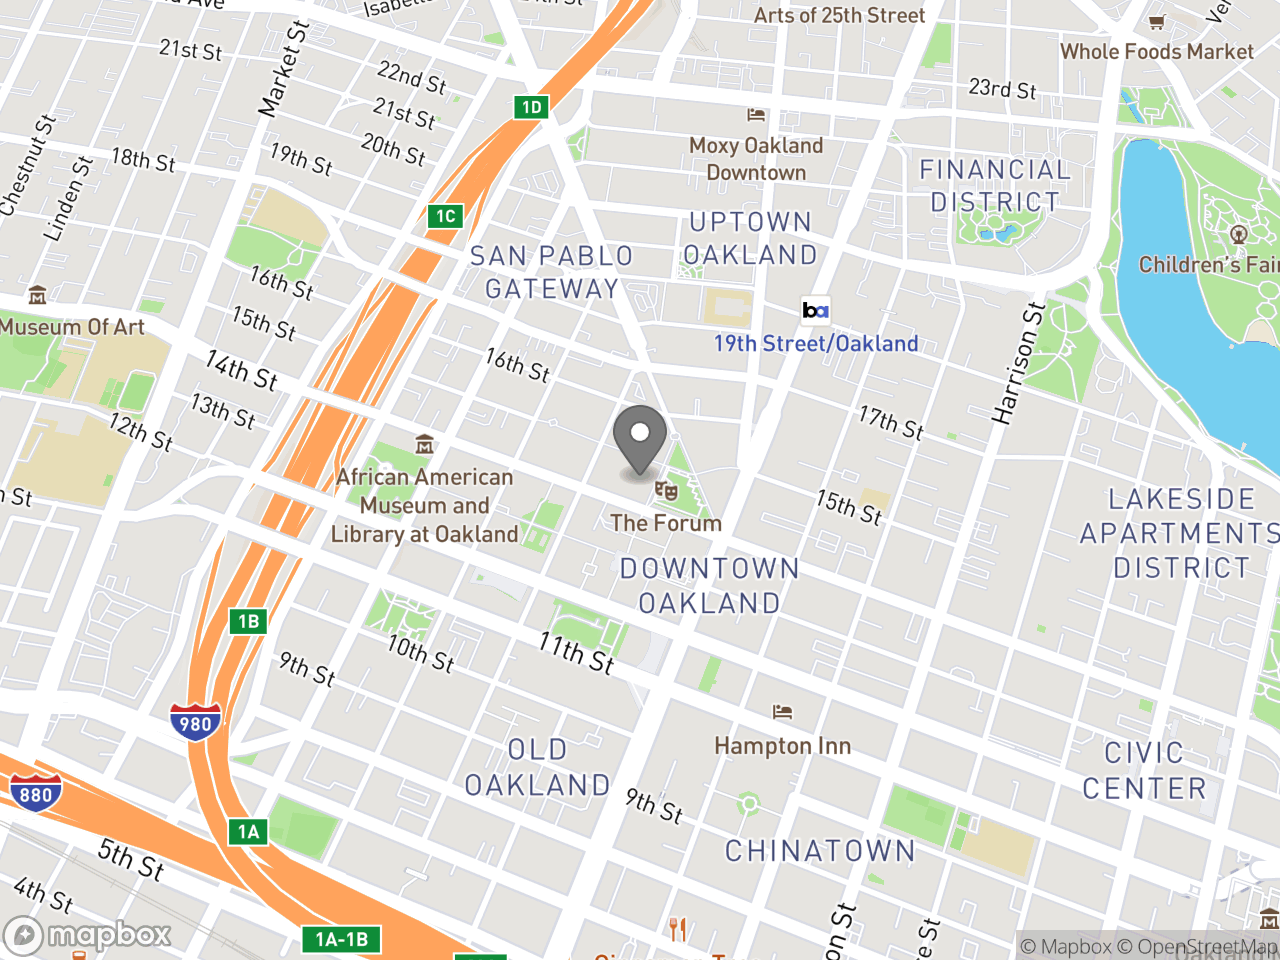 Map image for Safety & Services Oversight Commission Meeting, located at 1 Frank H Ogawa Plaza in Oakland, CA 94612